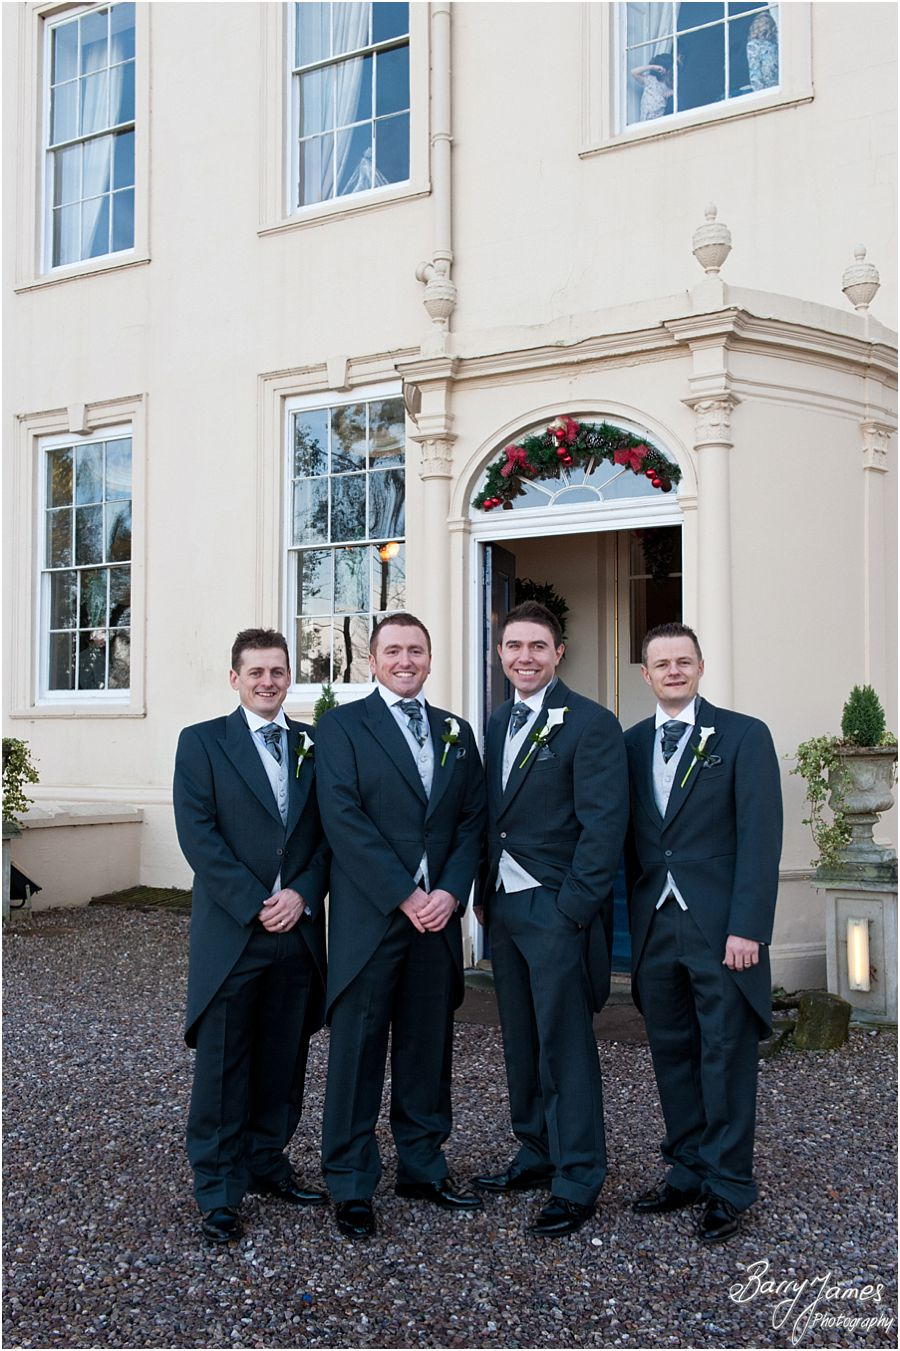 Bespoke creative wedding photography at Somerford Hall in Brewood by Recommended Wedding Photographer Barry James